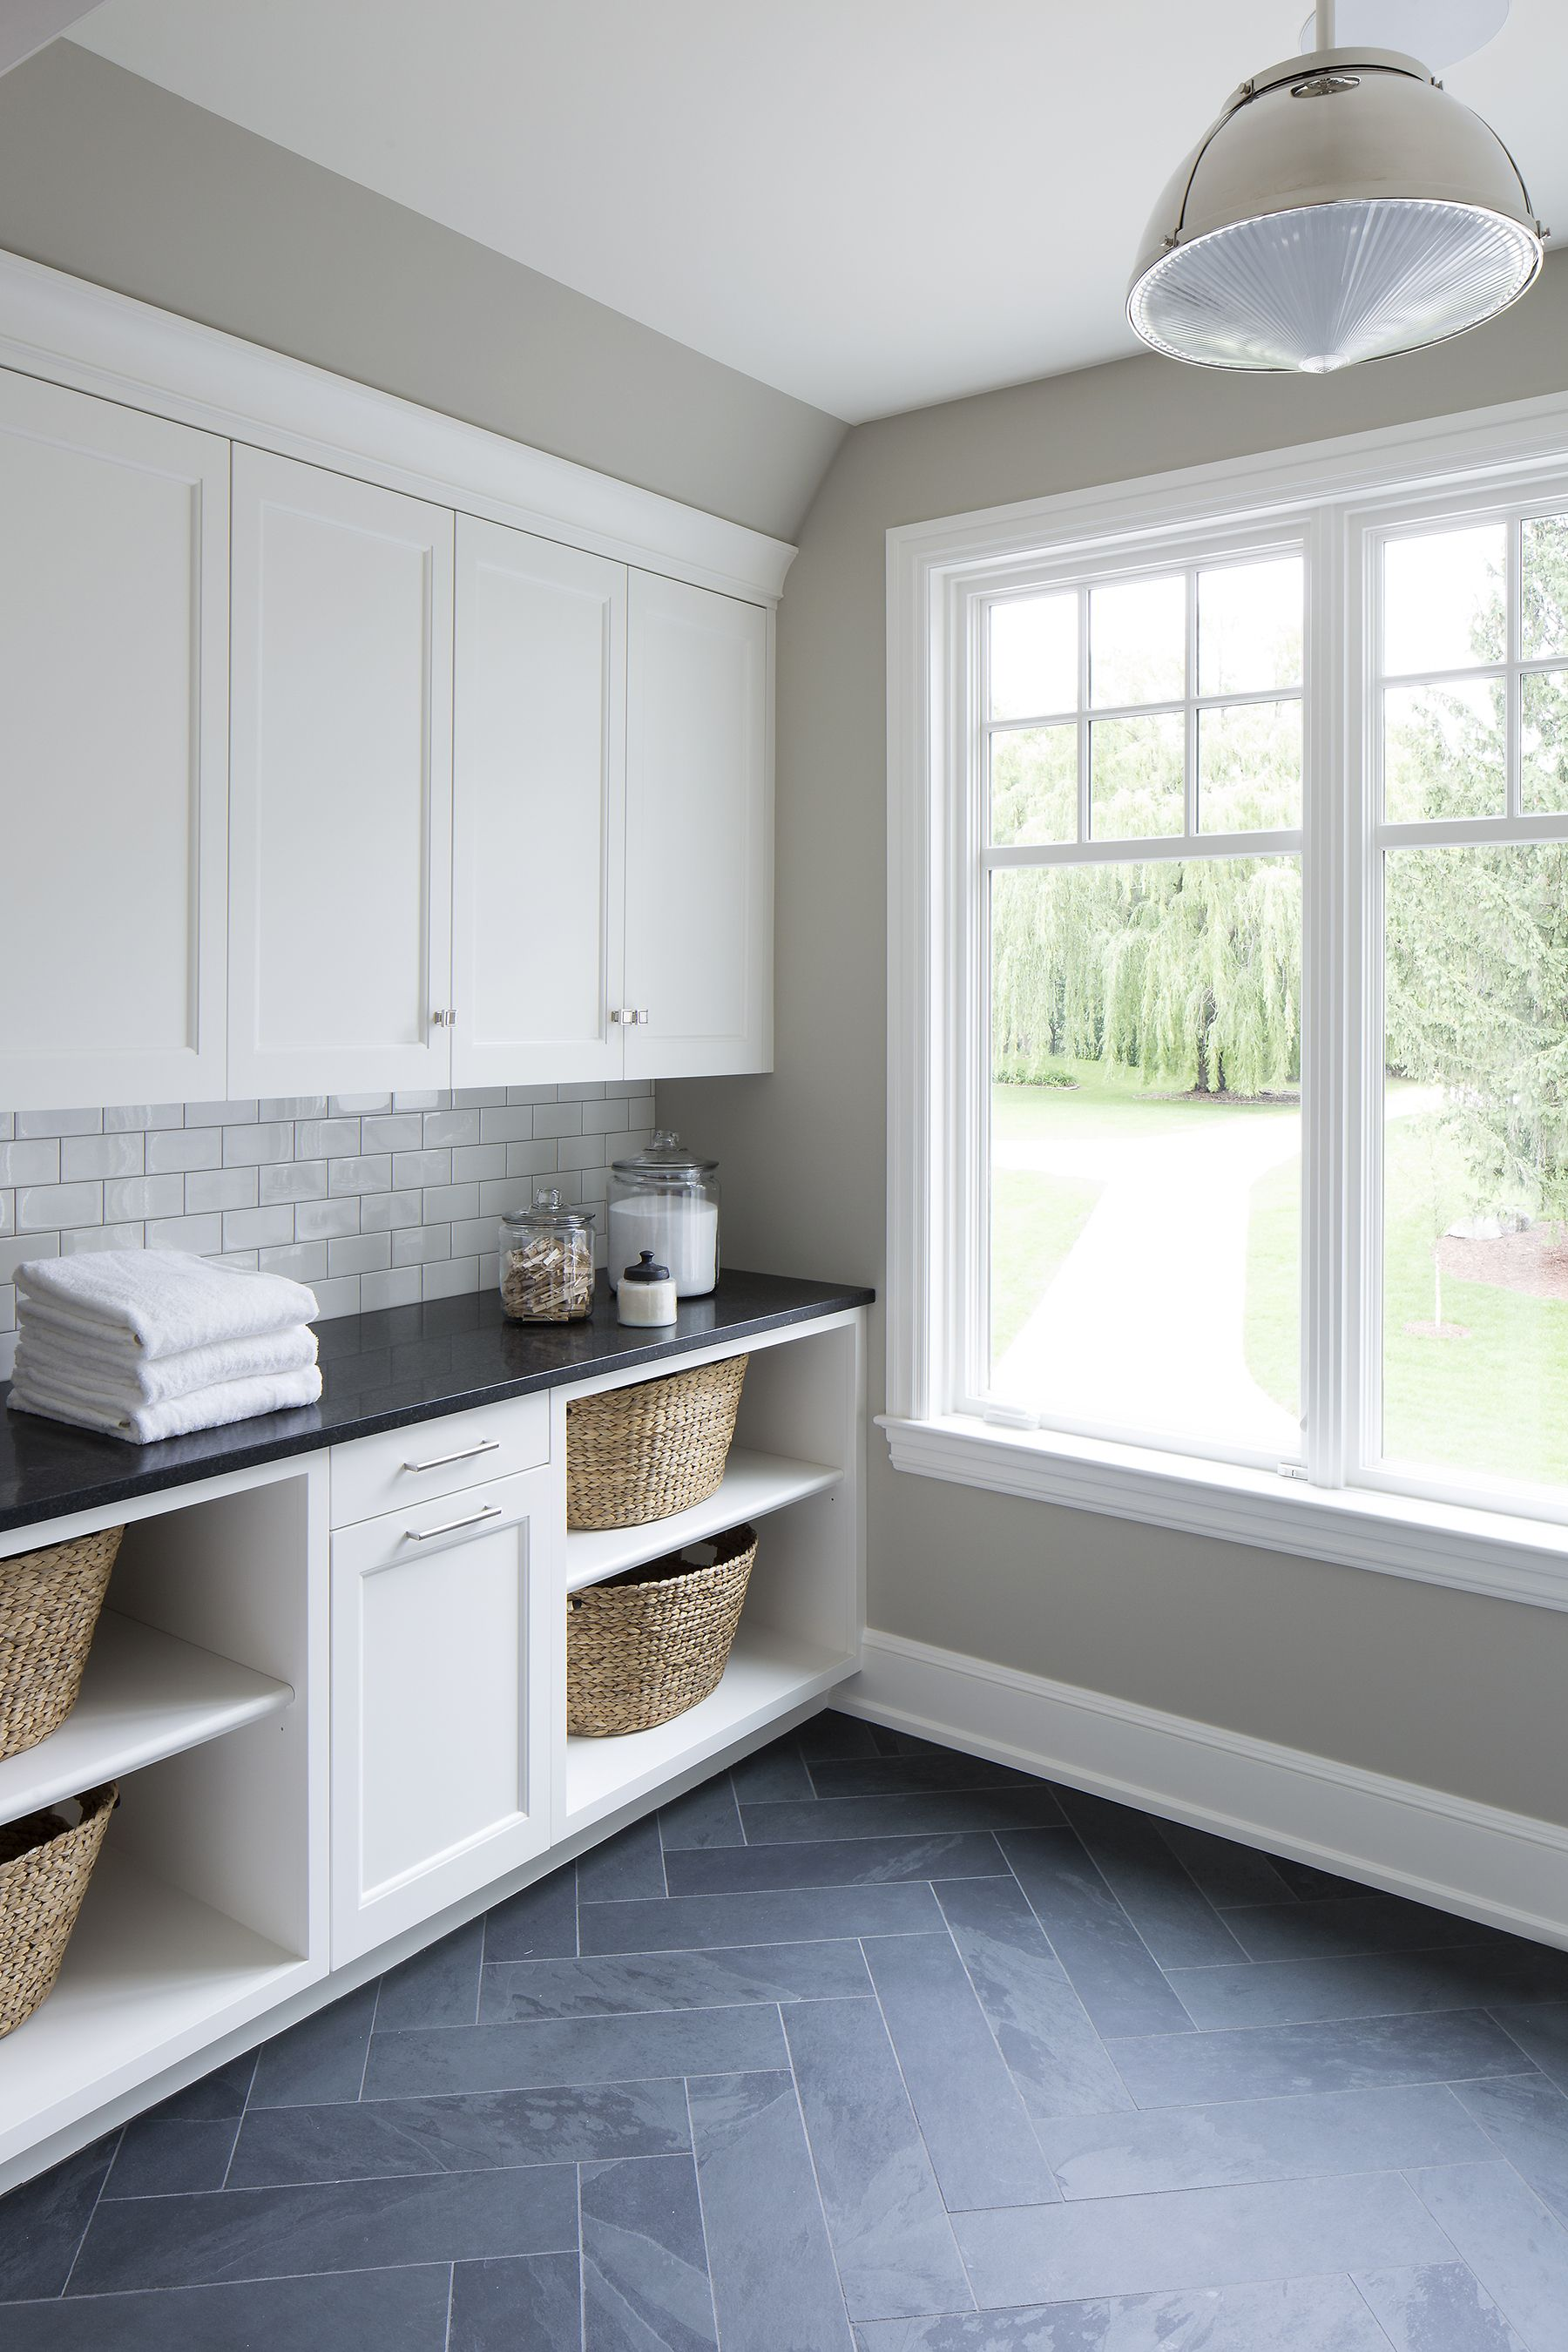 Herringbone tile slates in laundry room Design by Vivid Interior Design Danielle Loven